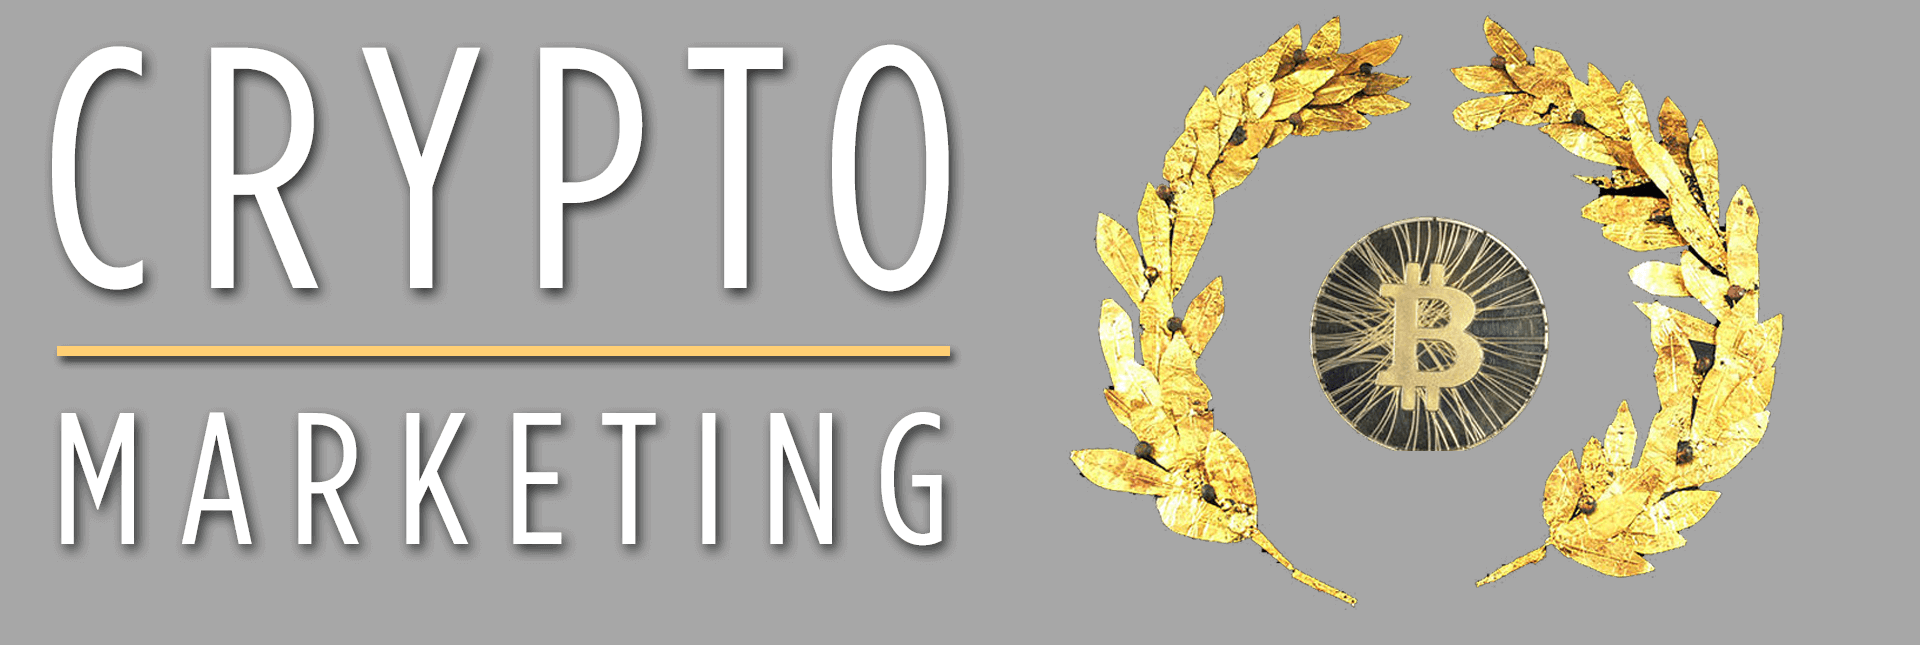 Crypto ICO Marketing Strategy